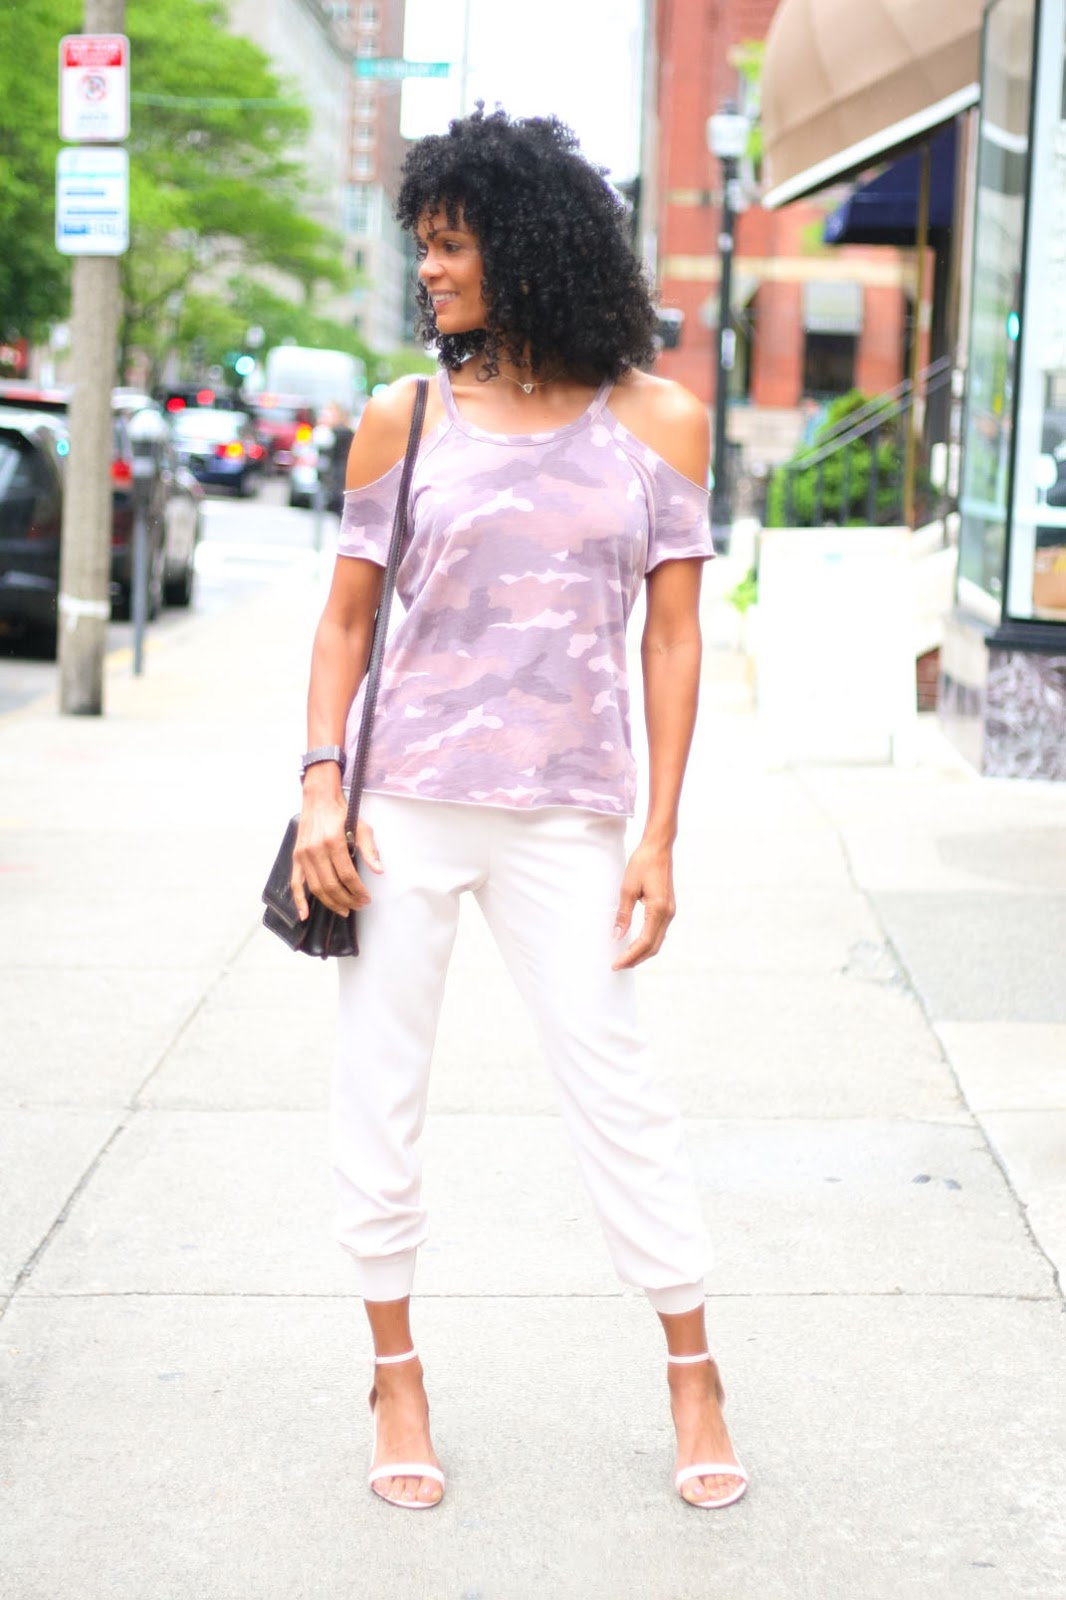 Over 40 fashion blogger Diane of Fashion on the 4th Floor in blush pink